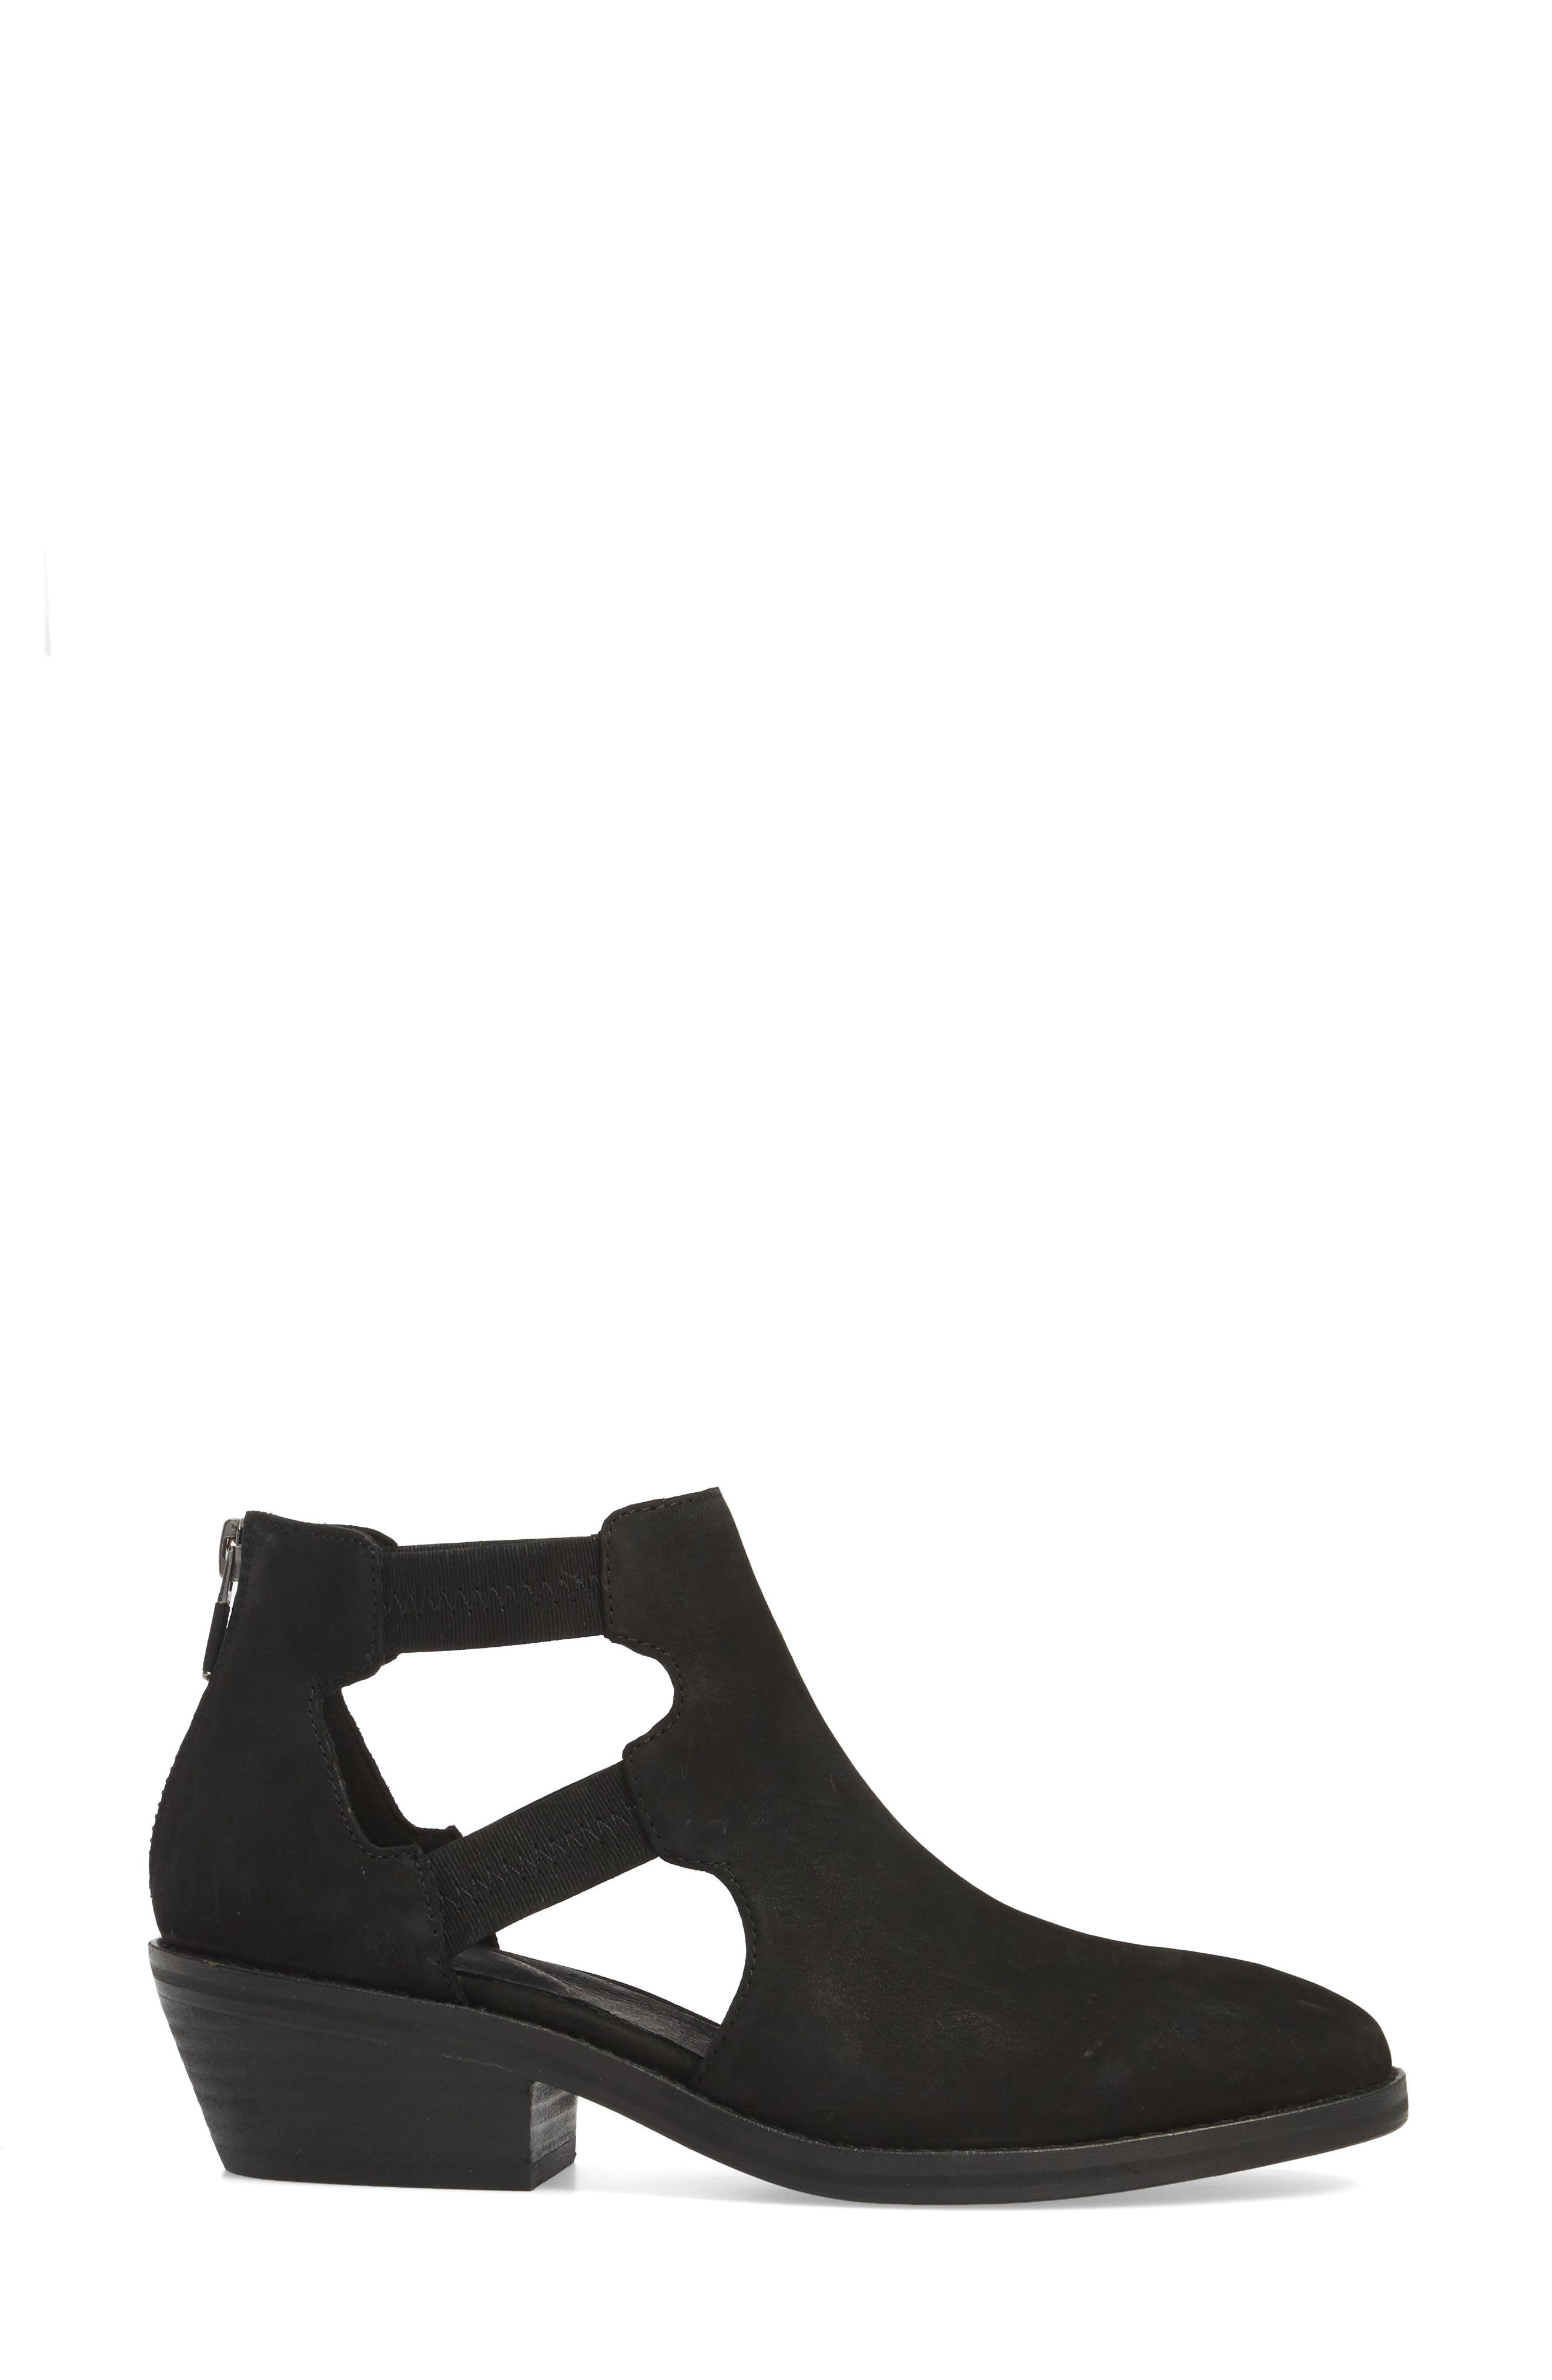 Vanda Cutout Bootie,                             Alternate thumbnail 3, color,                             001